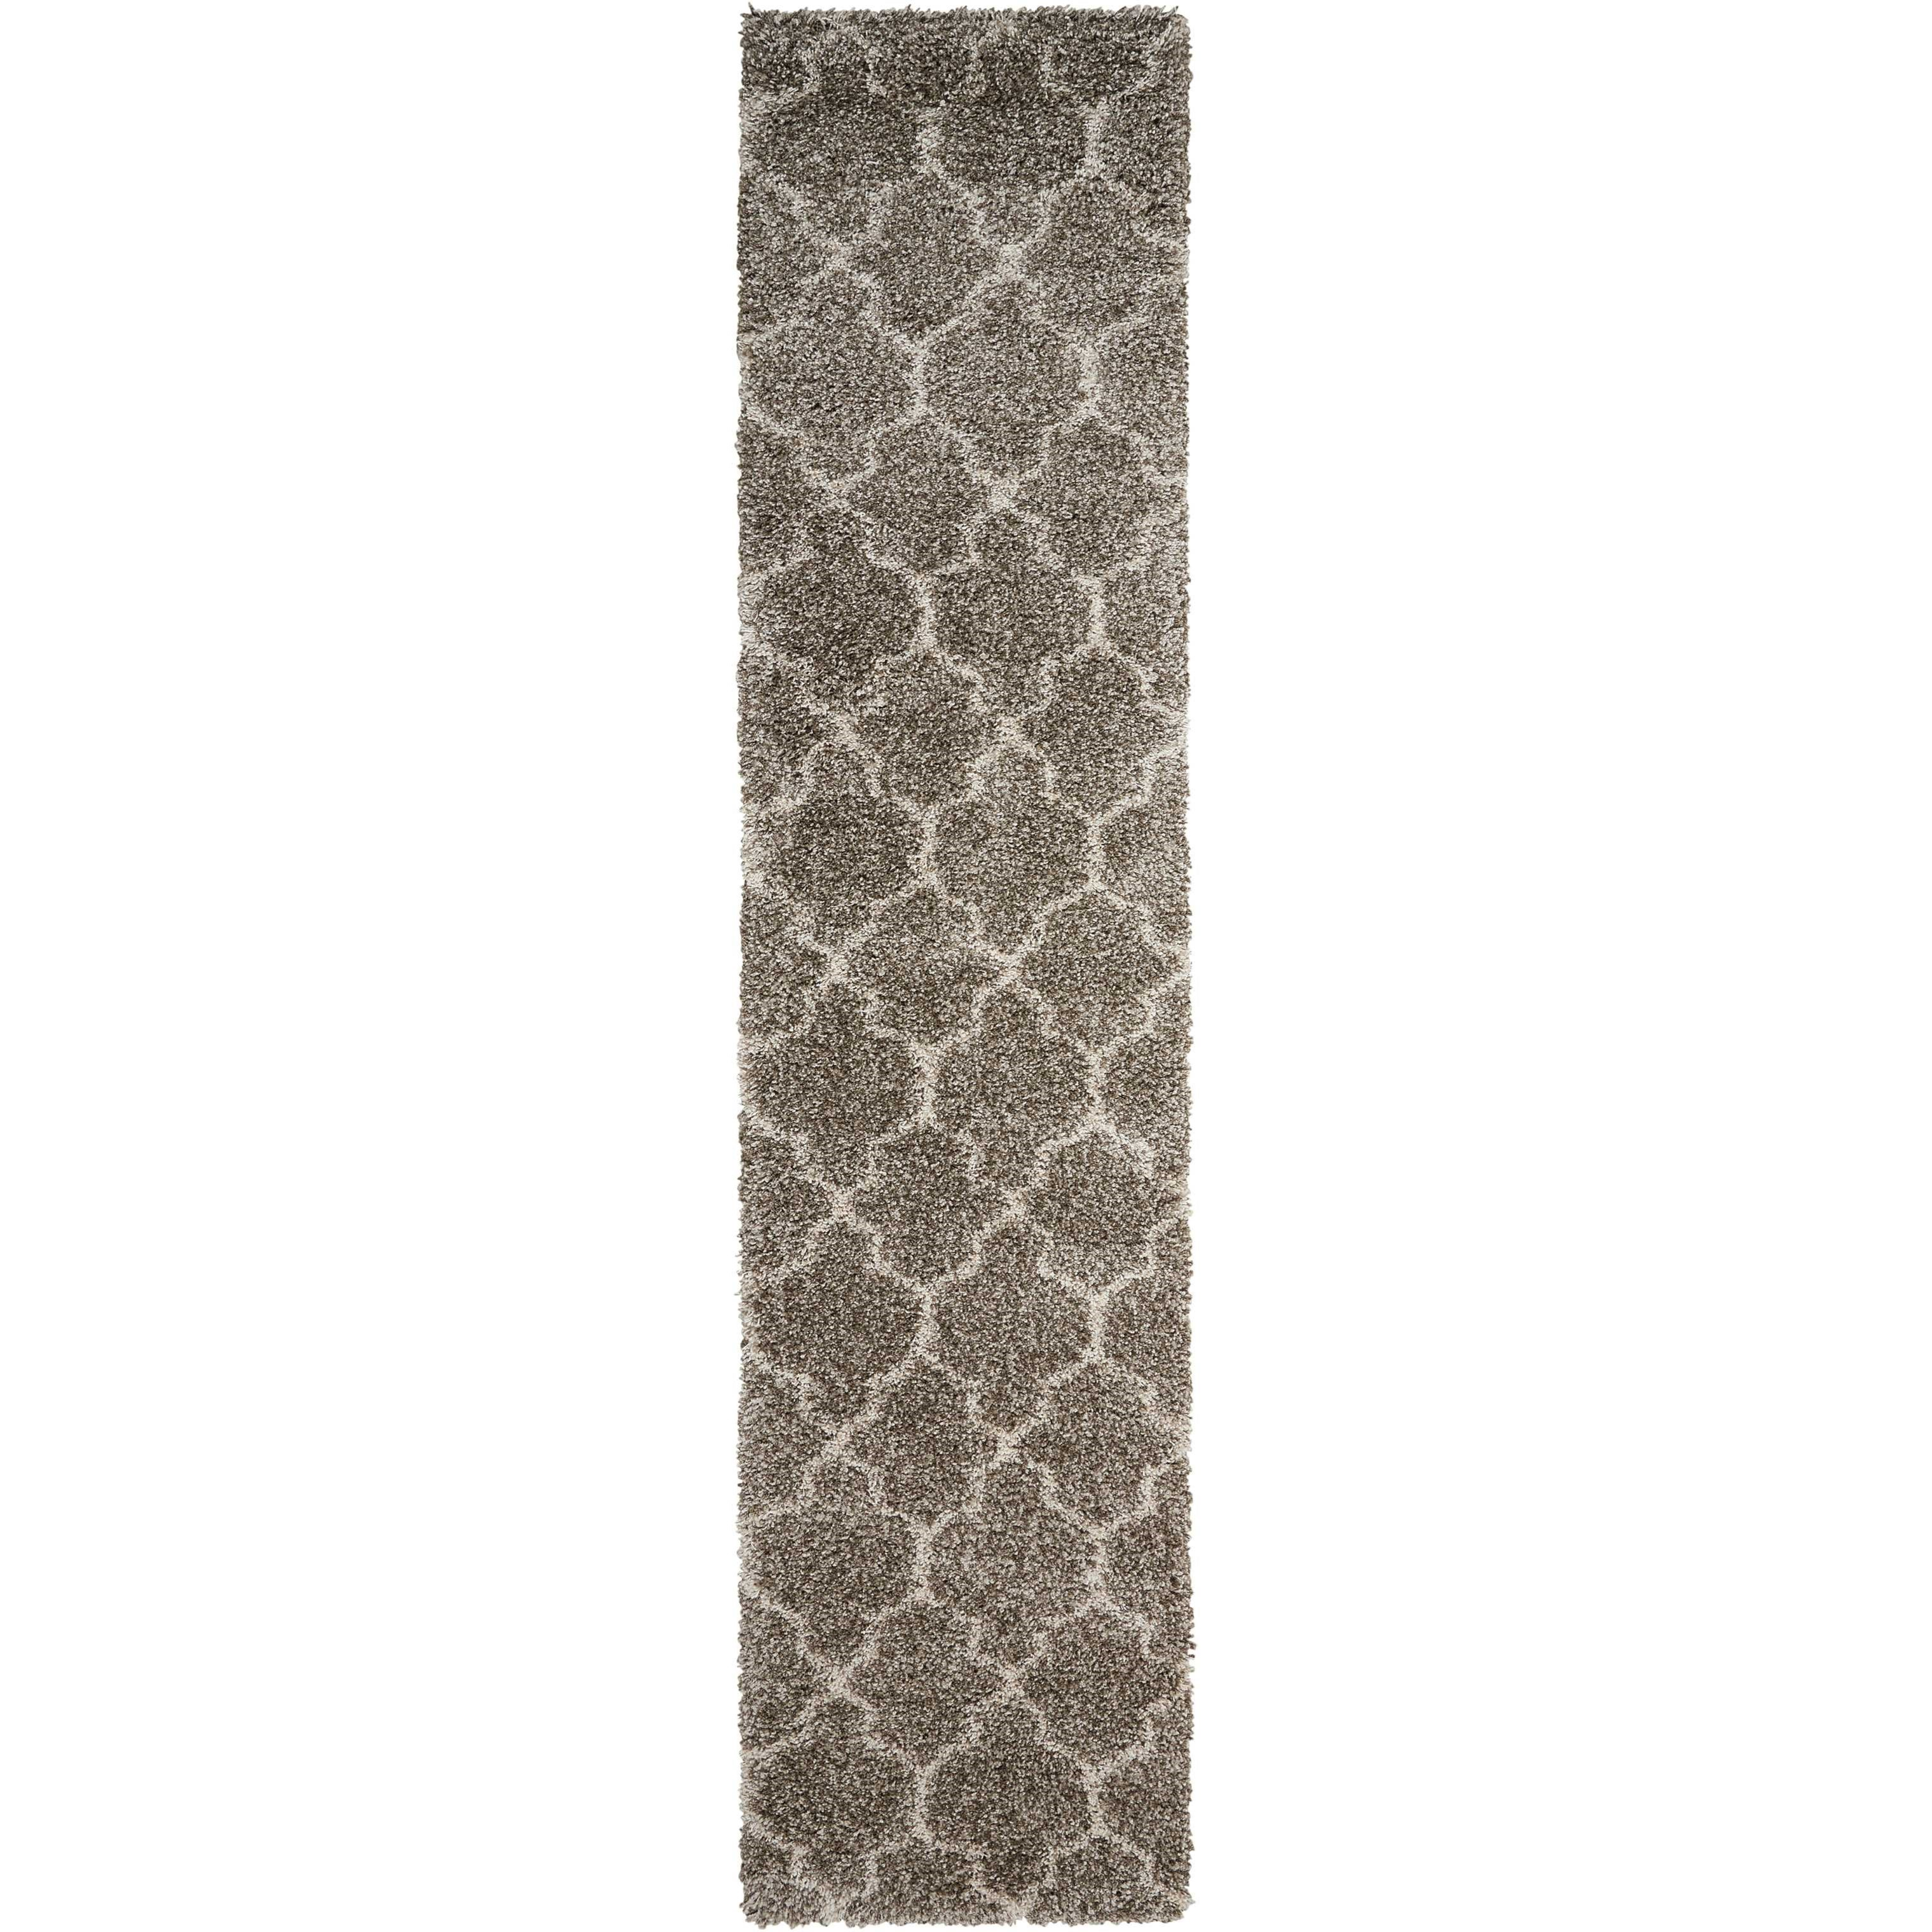 """Amore 2'2"""" x 10' Stone Runner Rug by Nourison at Home Collections Furniture"""